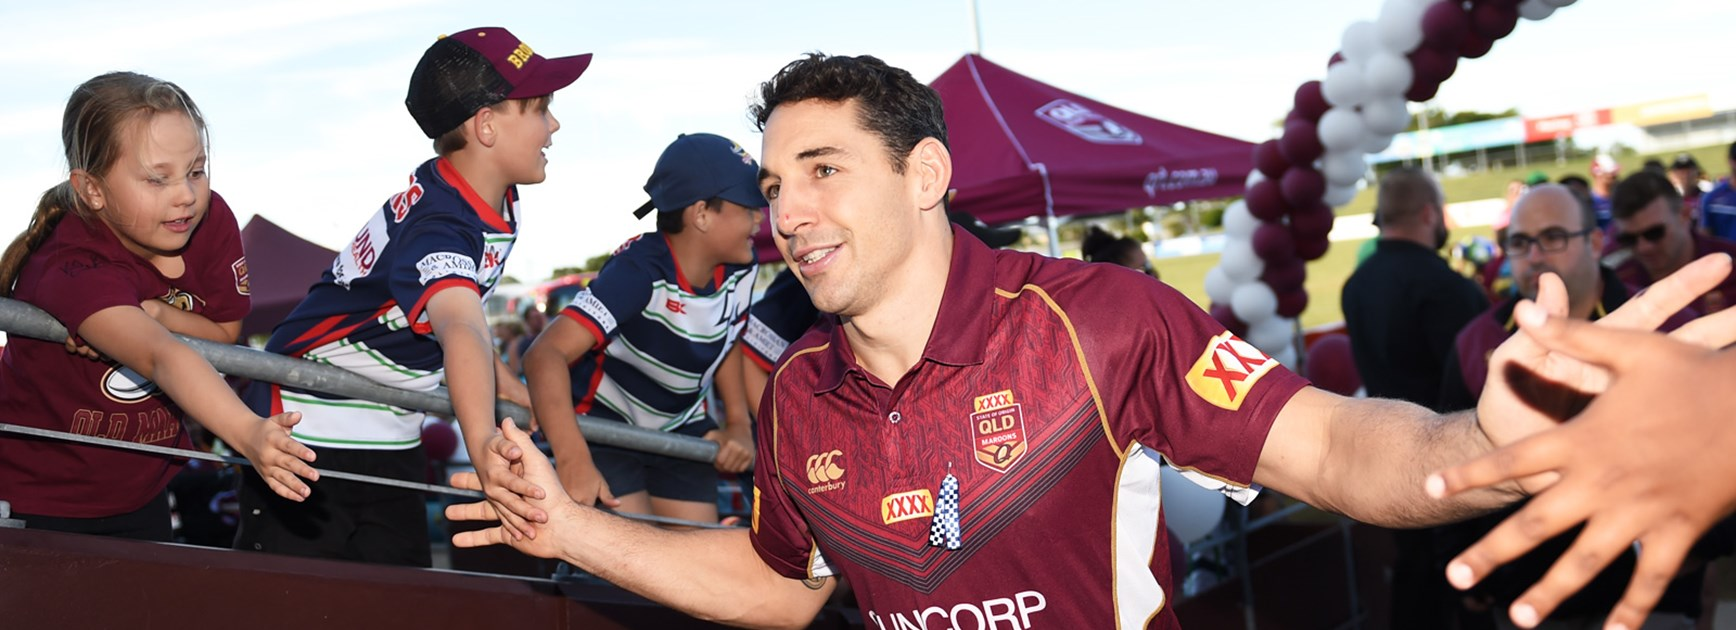 Self-inflicted torture inspires Slater's return